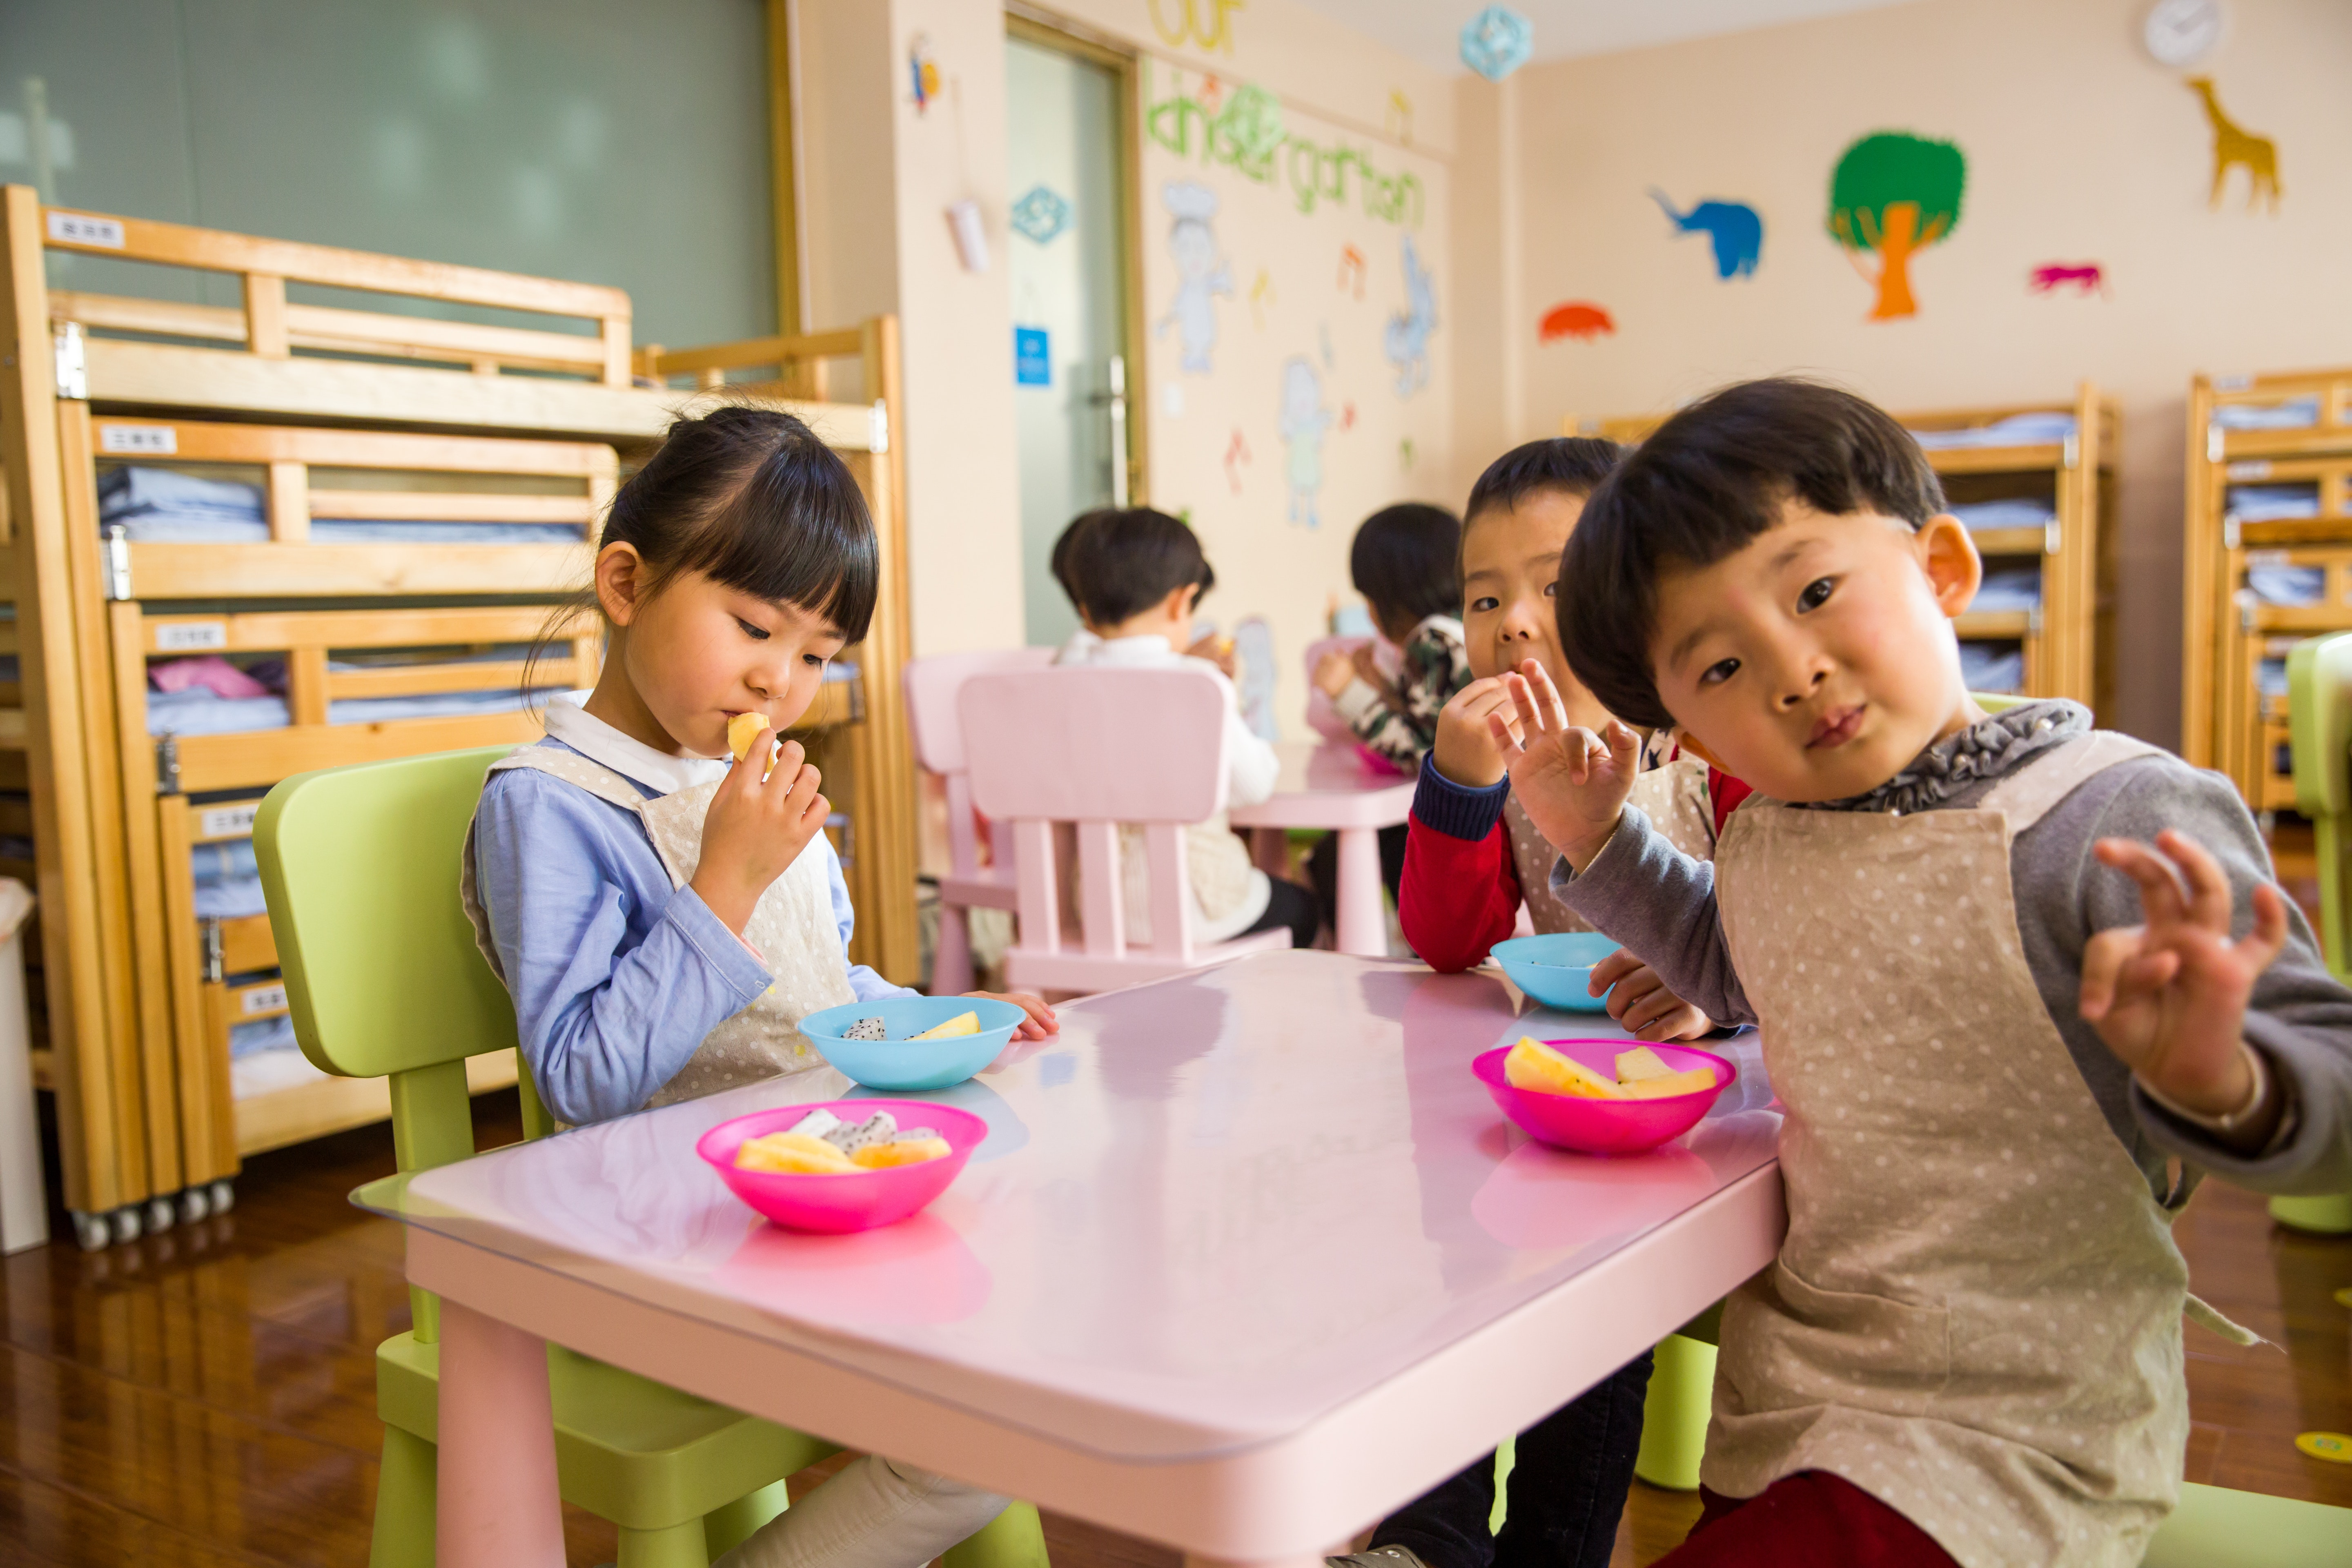 Top 7 Benefits of Healthy Eating in Early Childhood